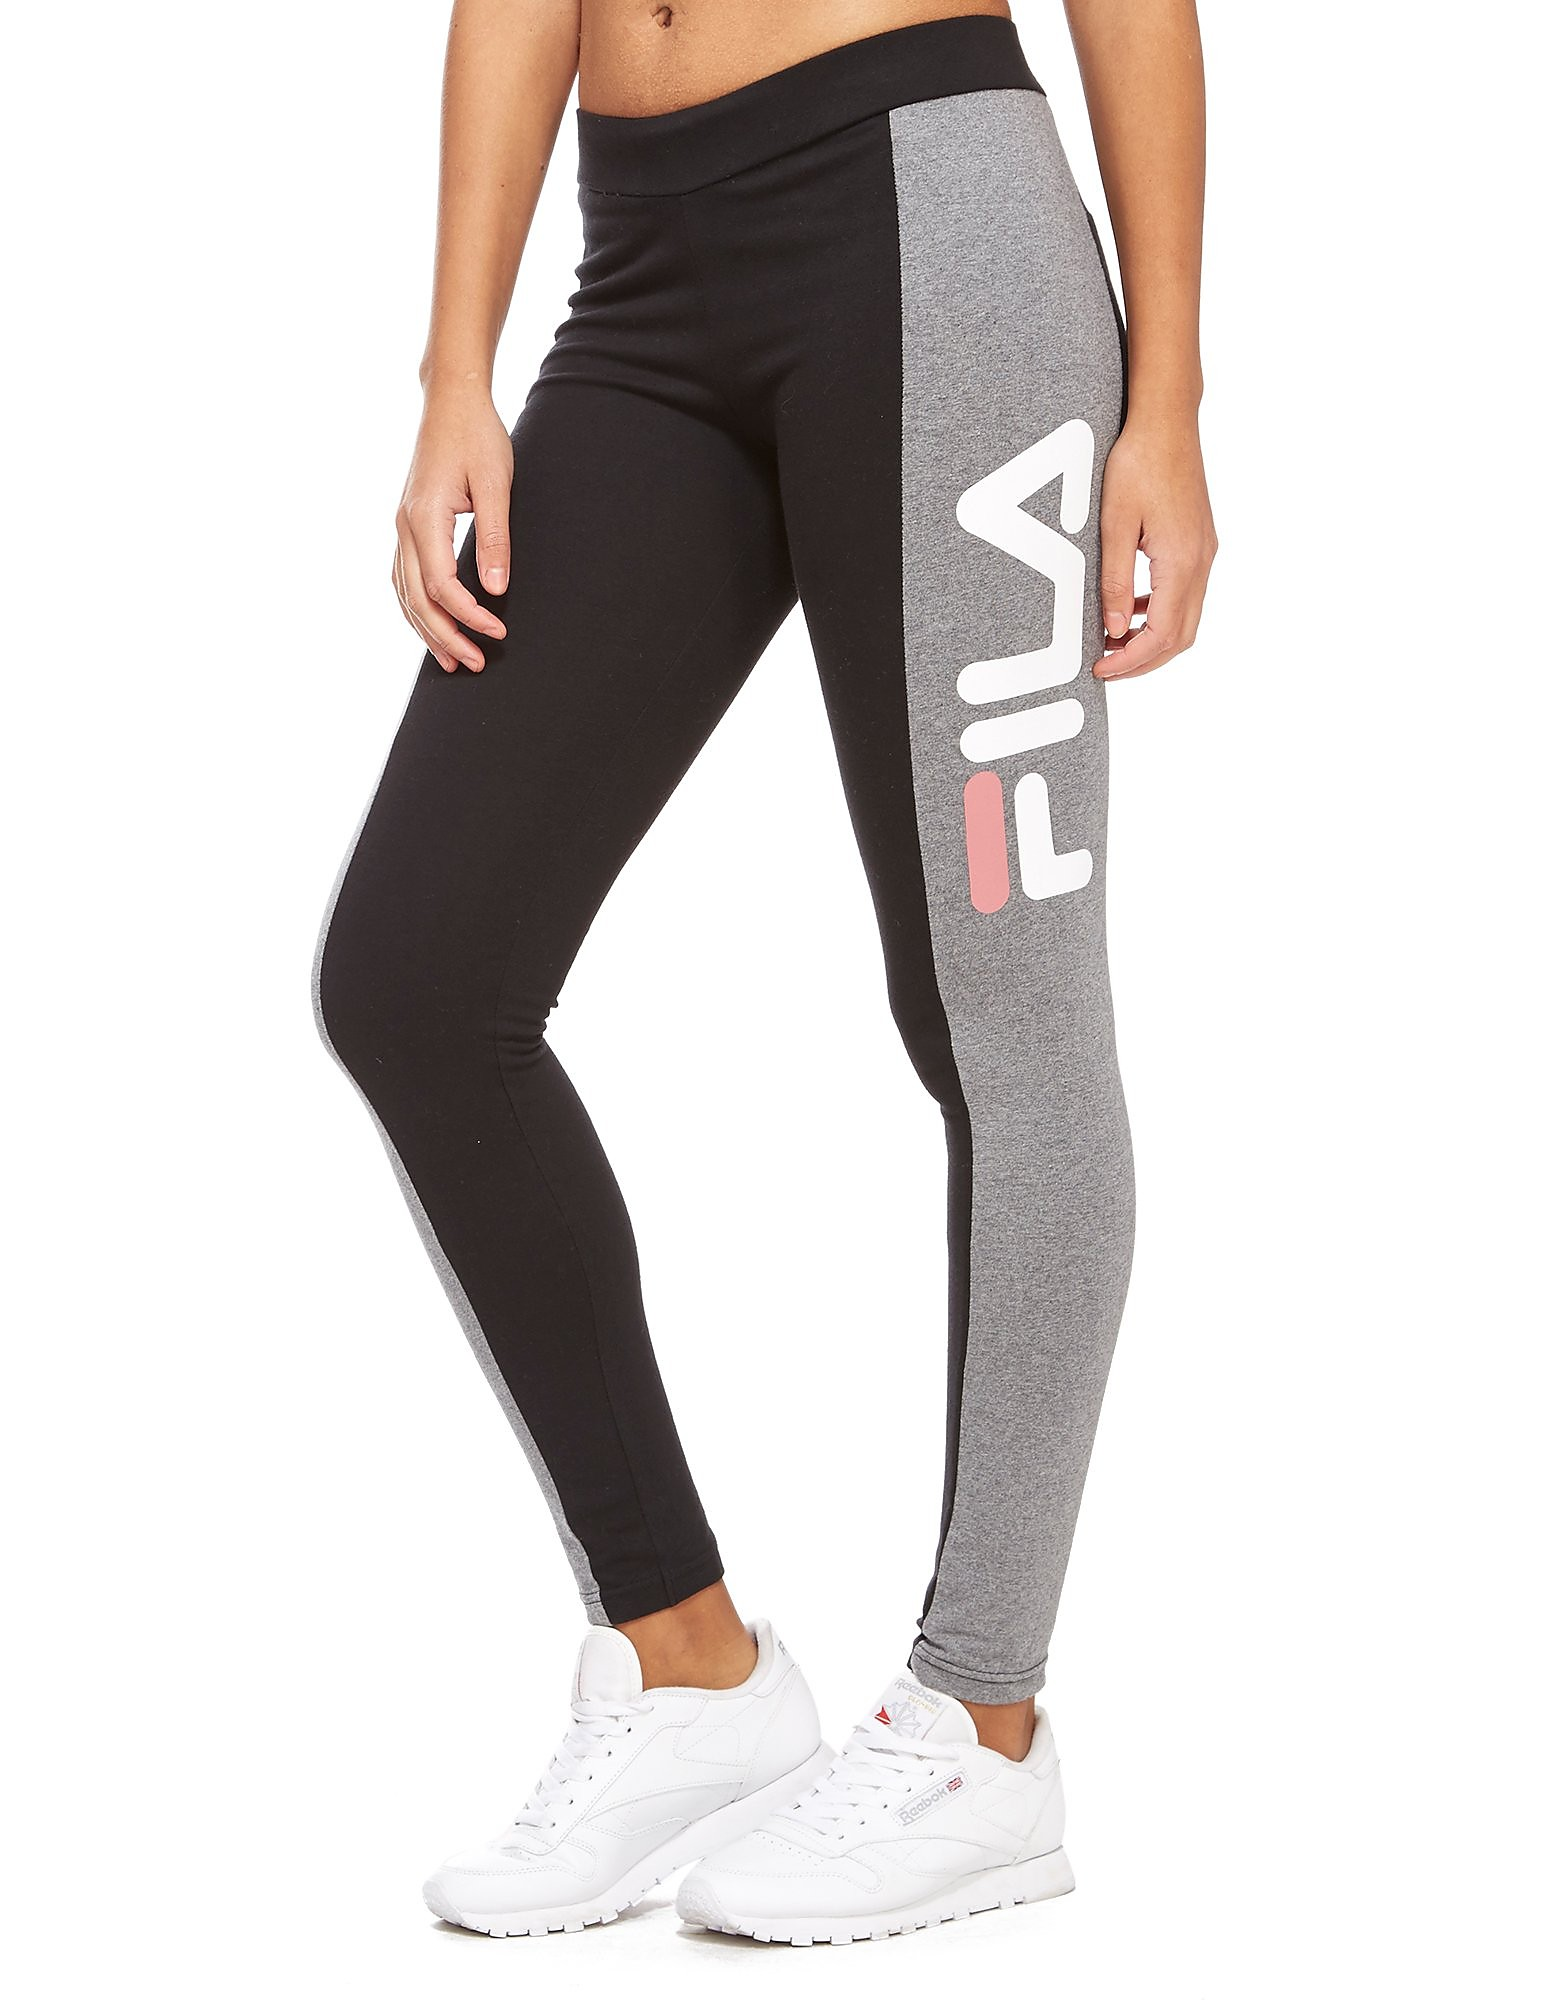 Fila Phoebe Panel Legging